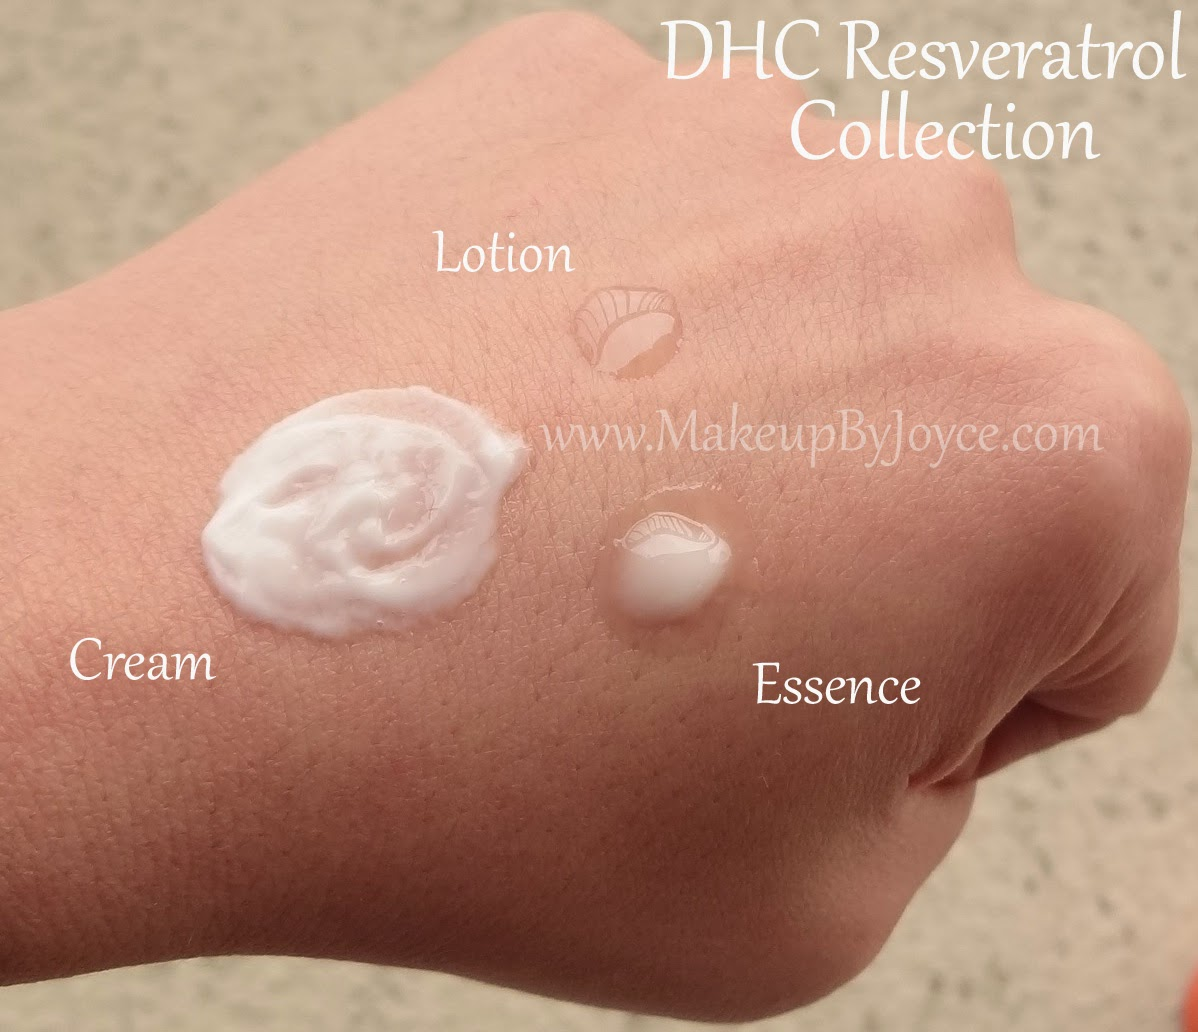 DHC Resveratrol Collection Swatches